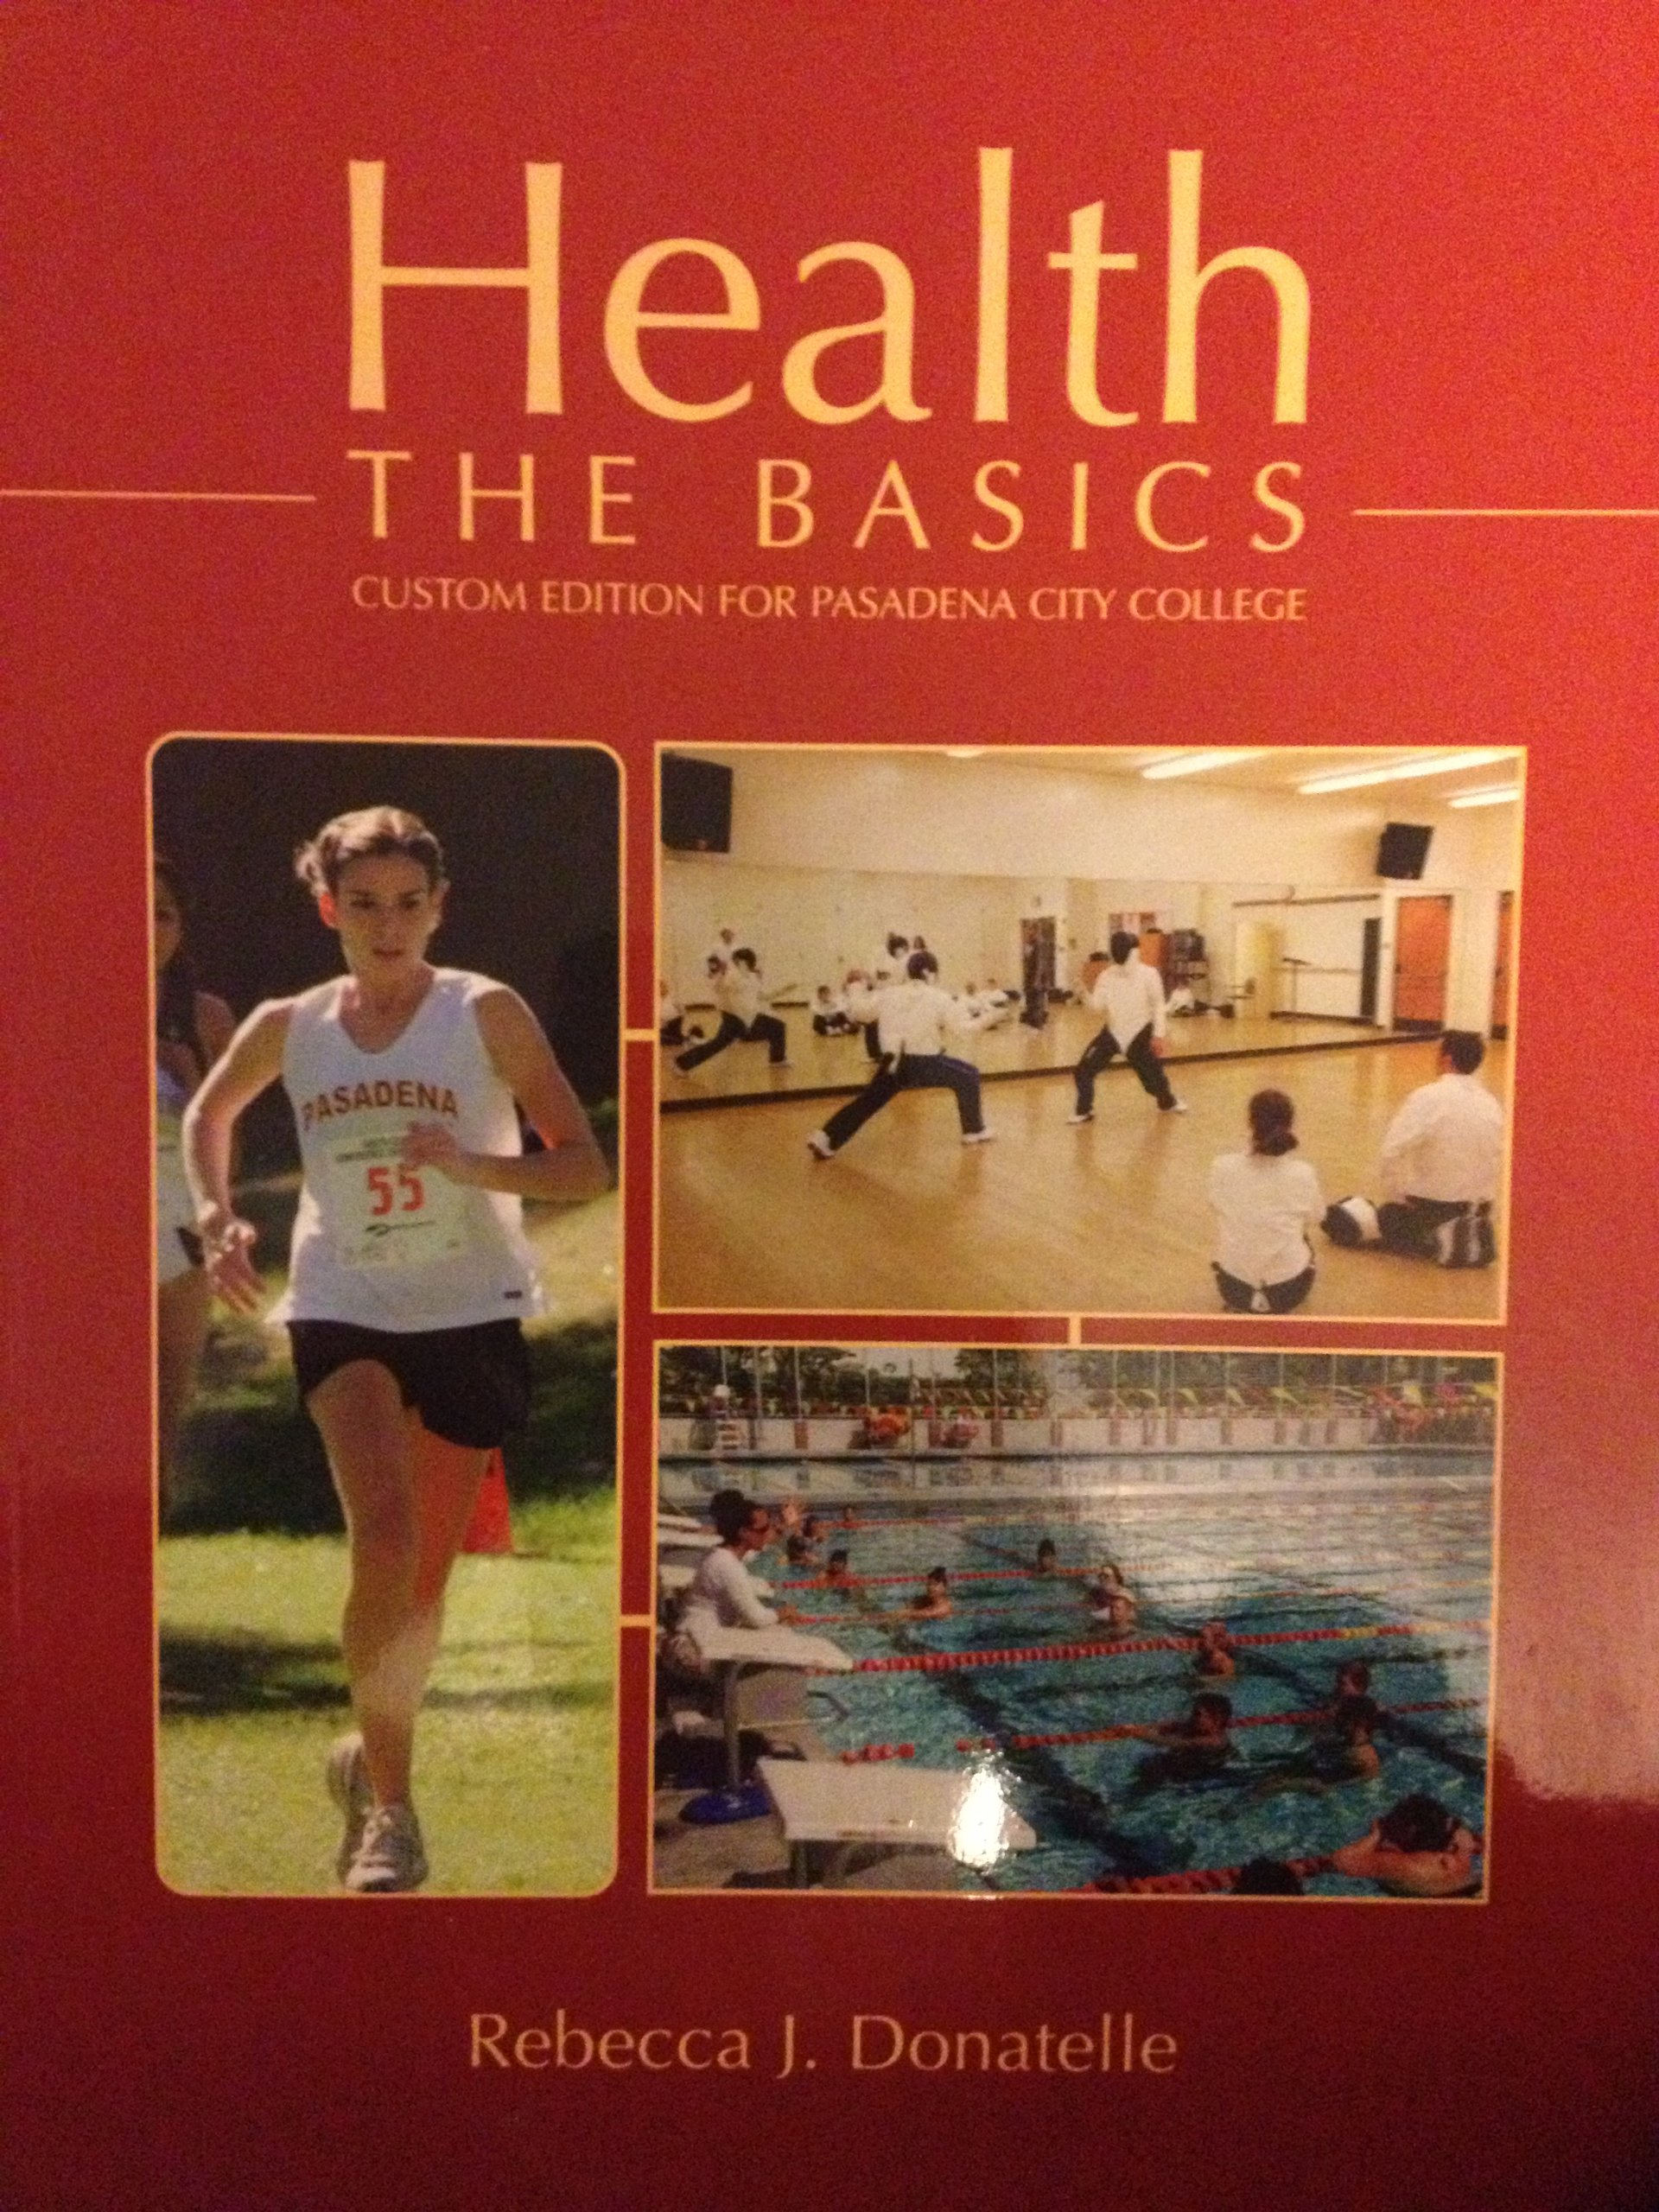 Health the basics custom edition for pasadena city college health the basics custom edition for pasadena city college donatelle 9780536570680 amazon books fandeluxe Gallery